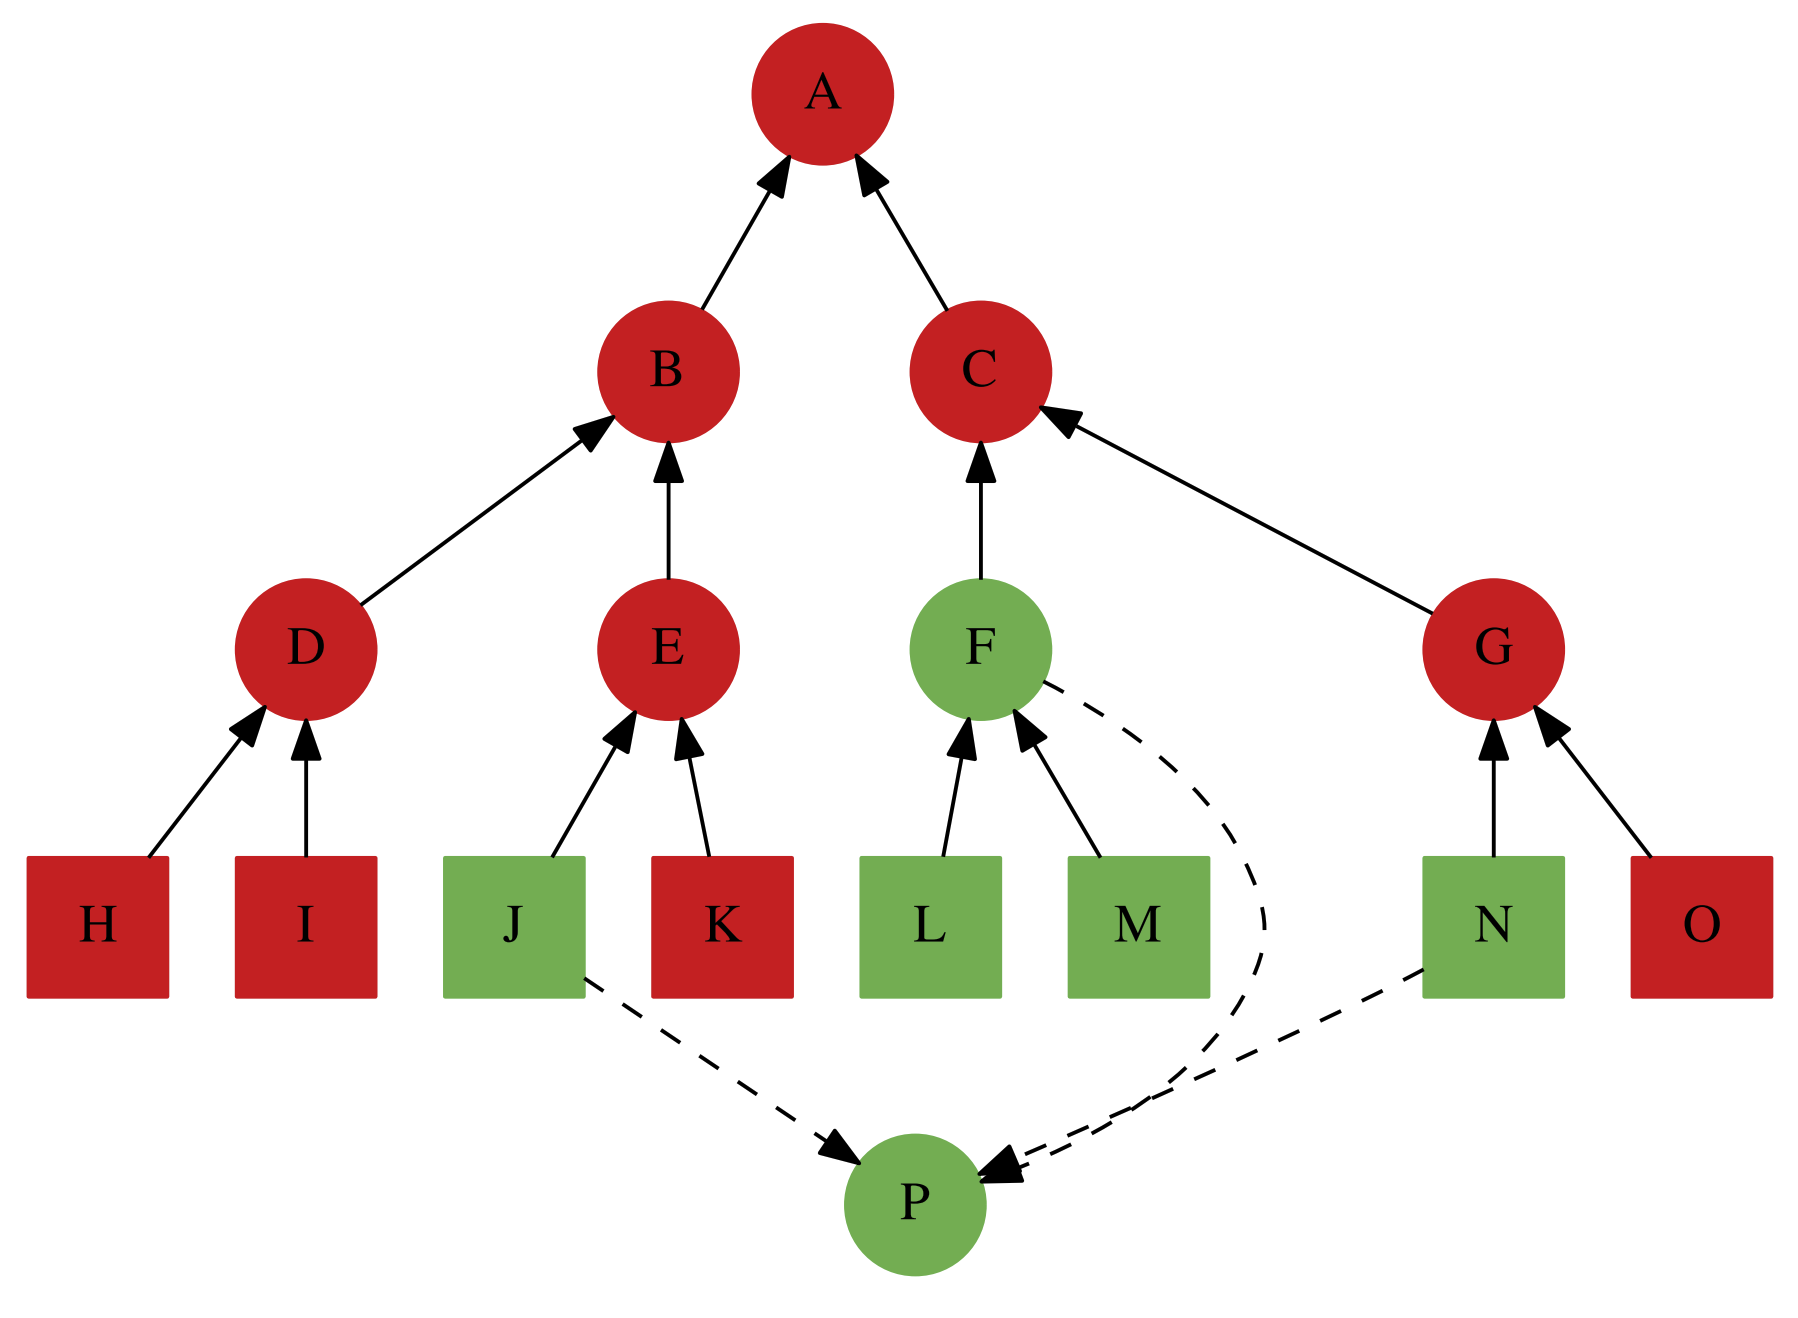 Example dependency graph from Ewert, 2018